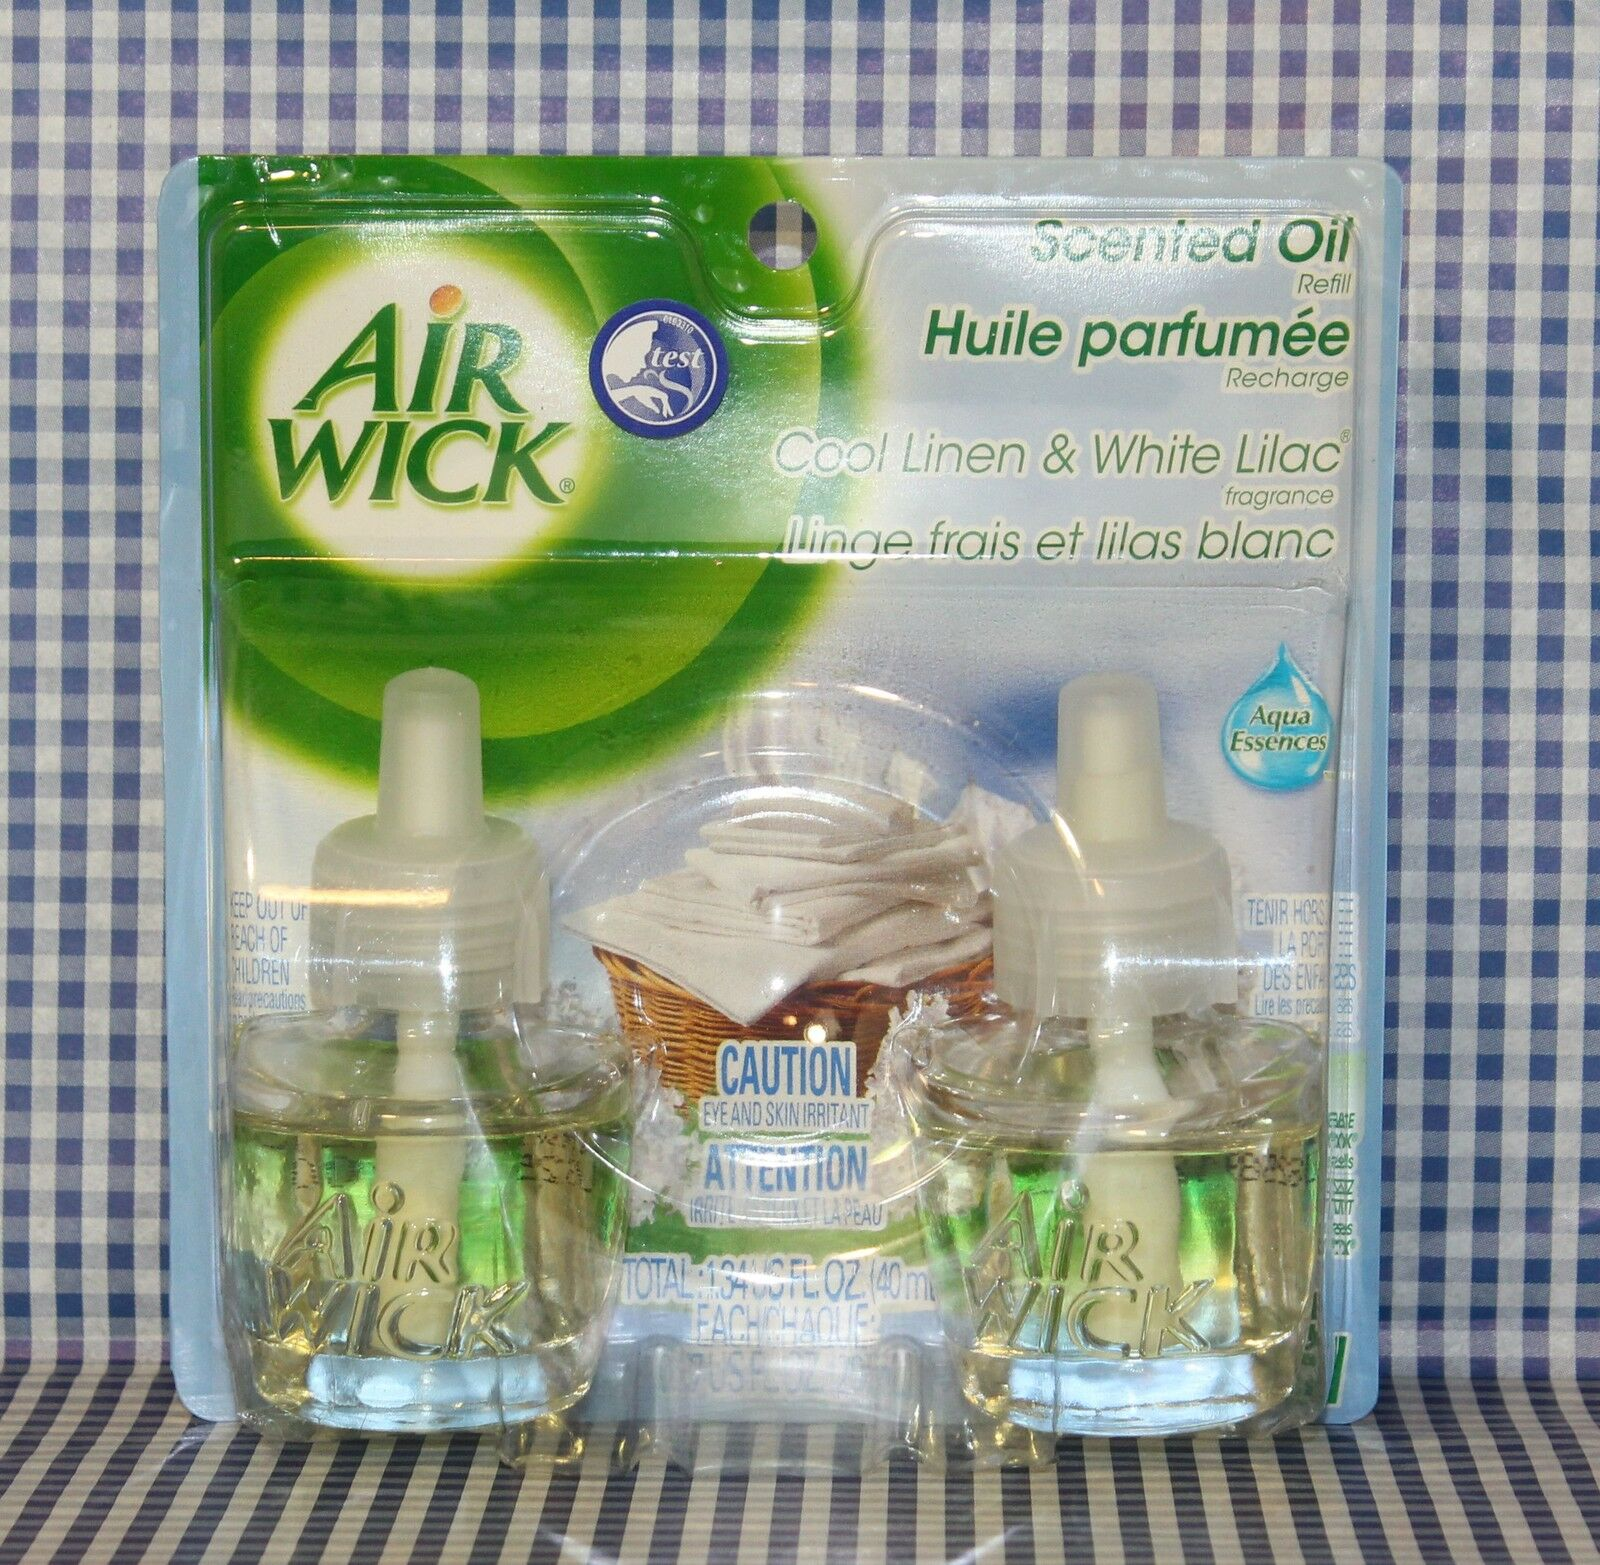 2 Refills Air Wick Cool Linen Amp White Lilac Scented Oil